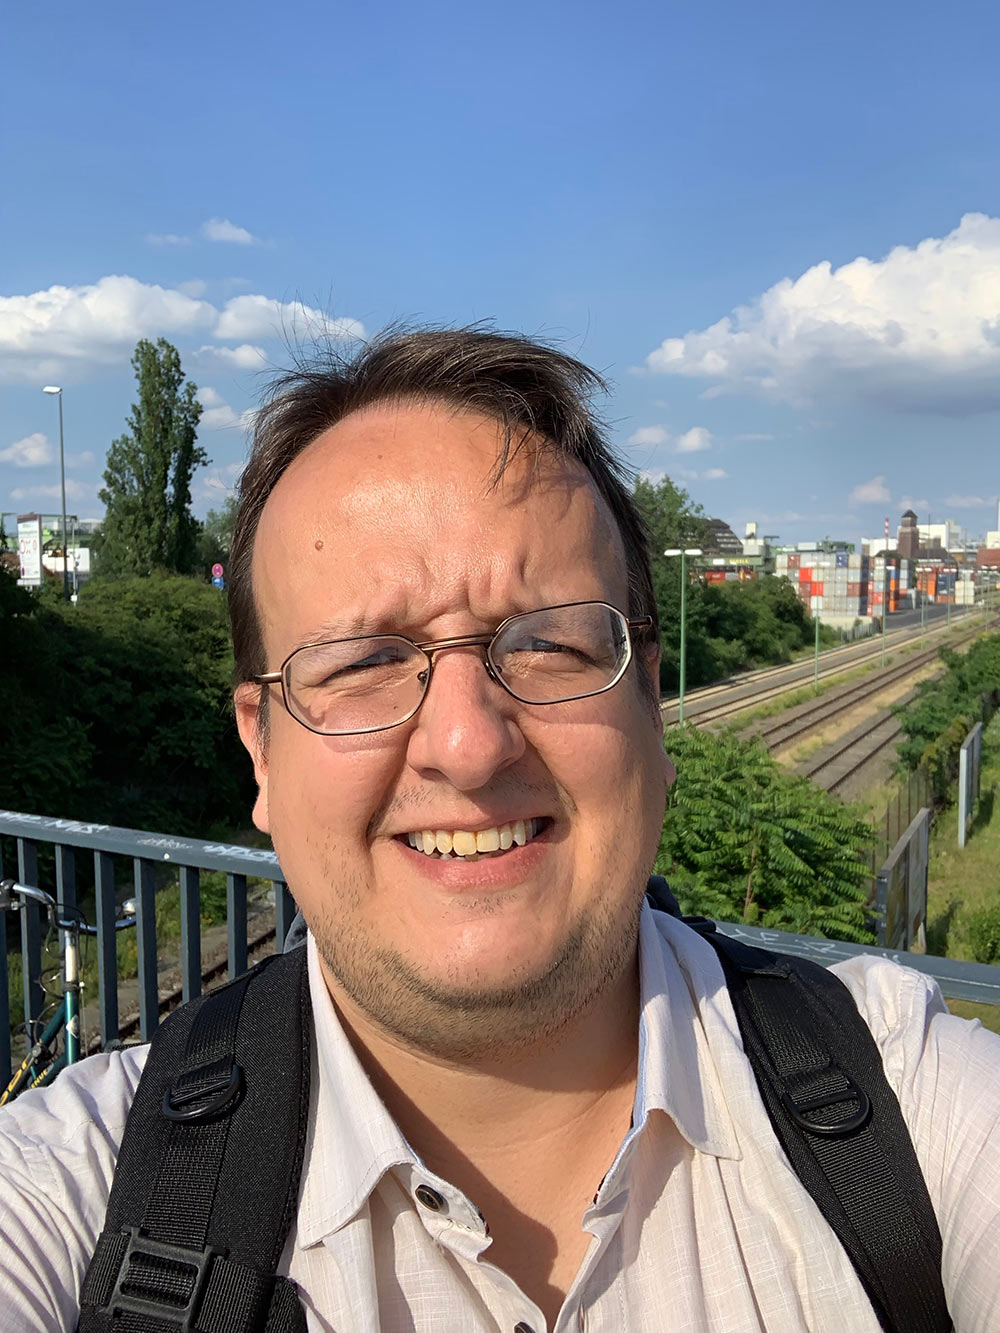 wceu 2019 day4 11 - WordCamp Europe 2019 - WordPress Konferenz – Tag 4 meines #InfluencerReisli